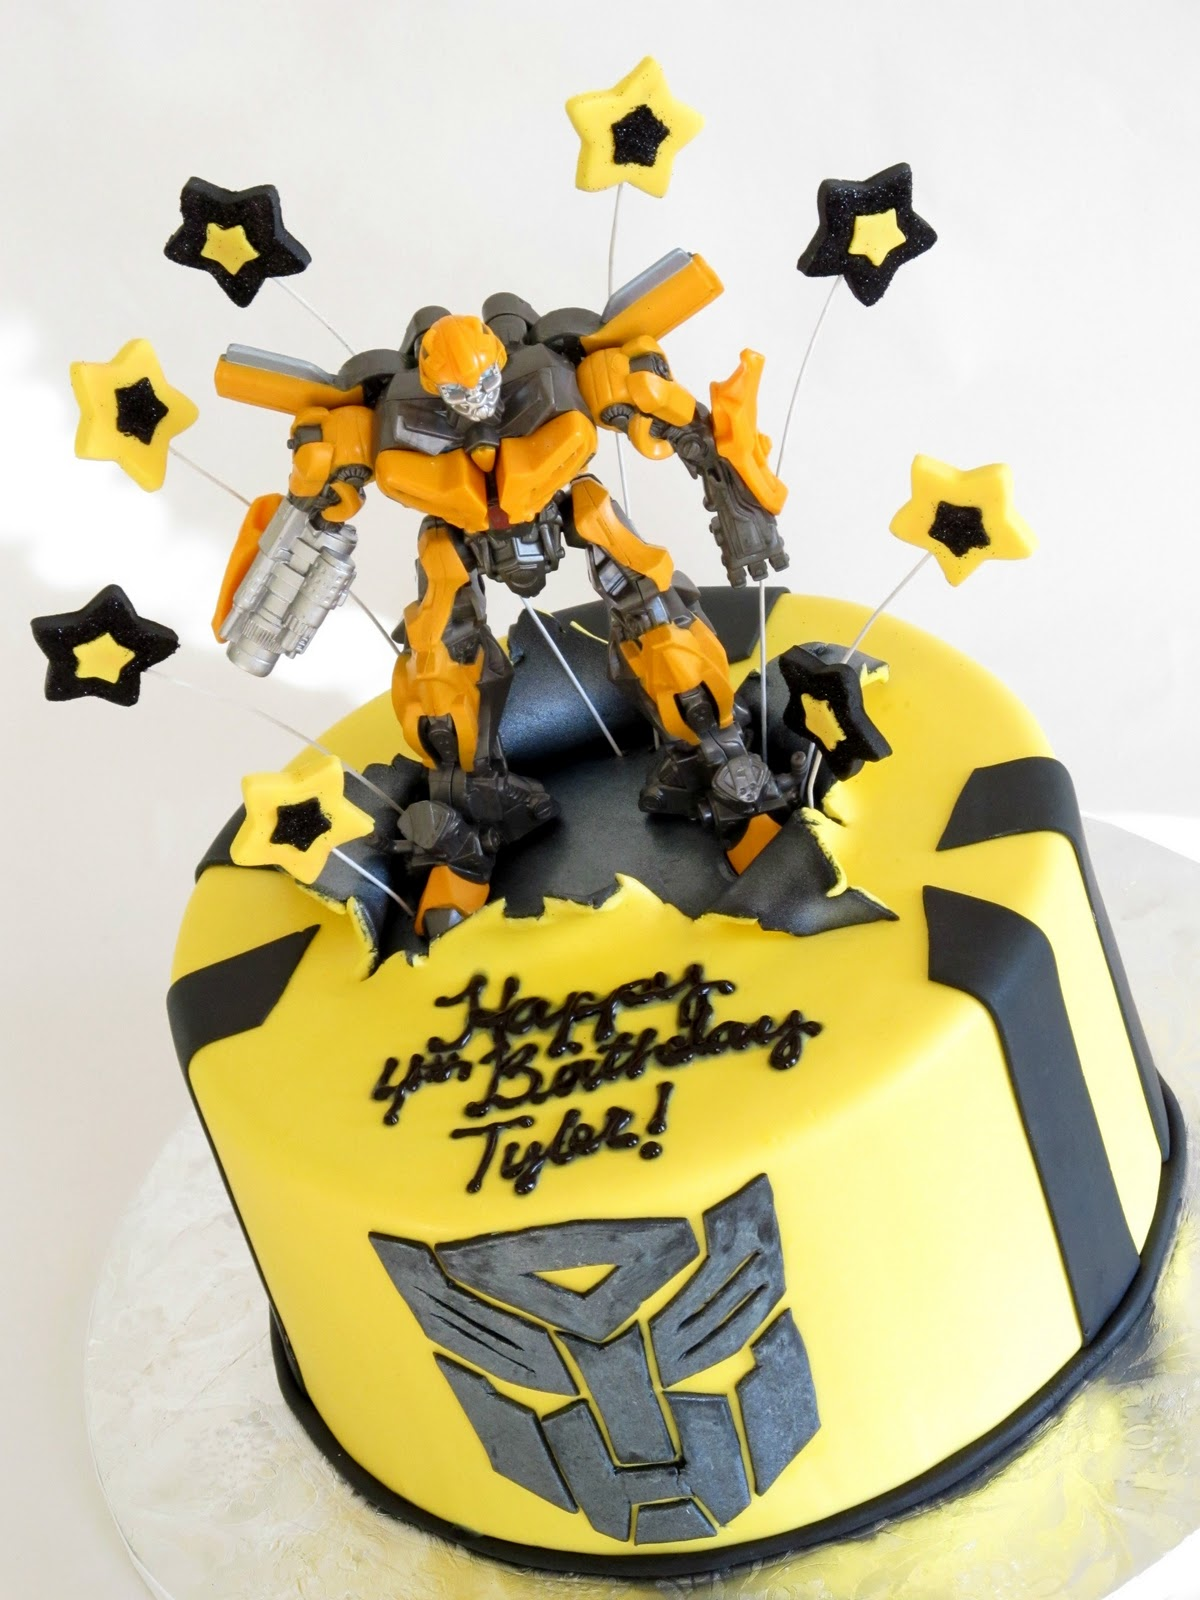 Transformers Bumblebee Cake Renee Conner Cake Design